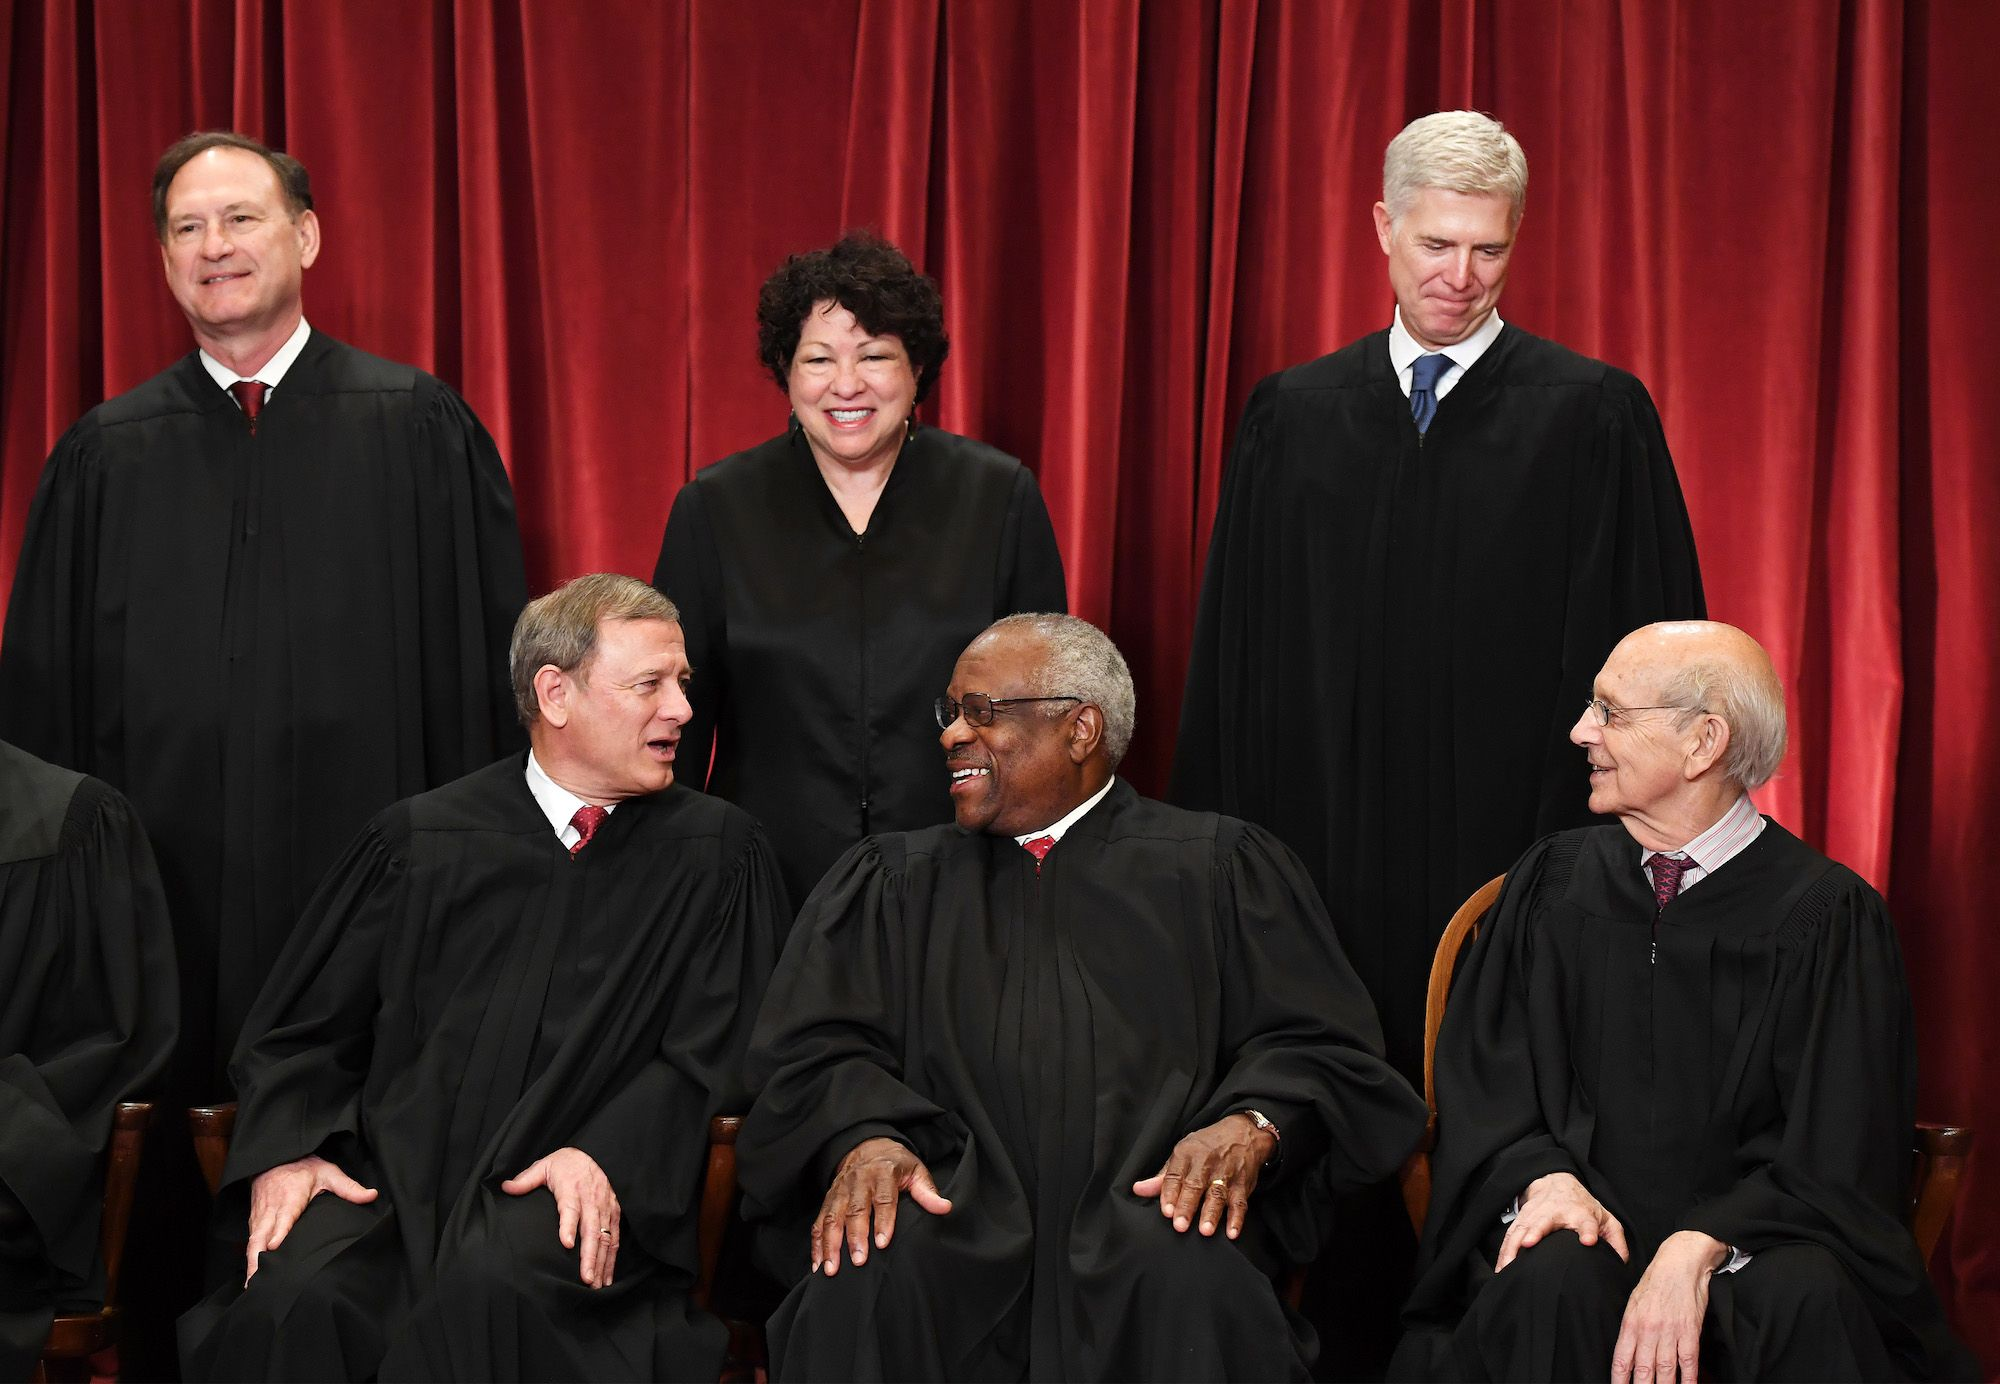 The Supreme Court's Conservatives Are Laying Landmines in the Law